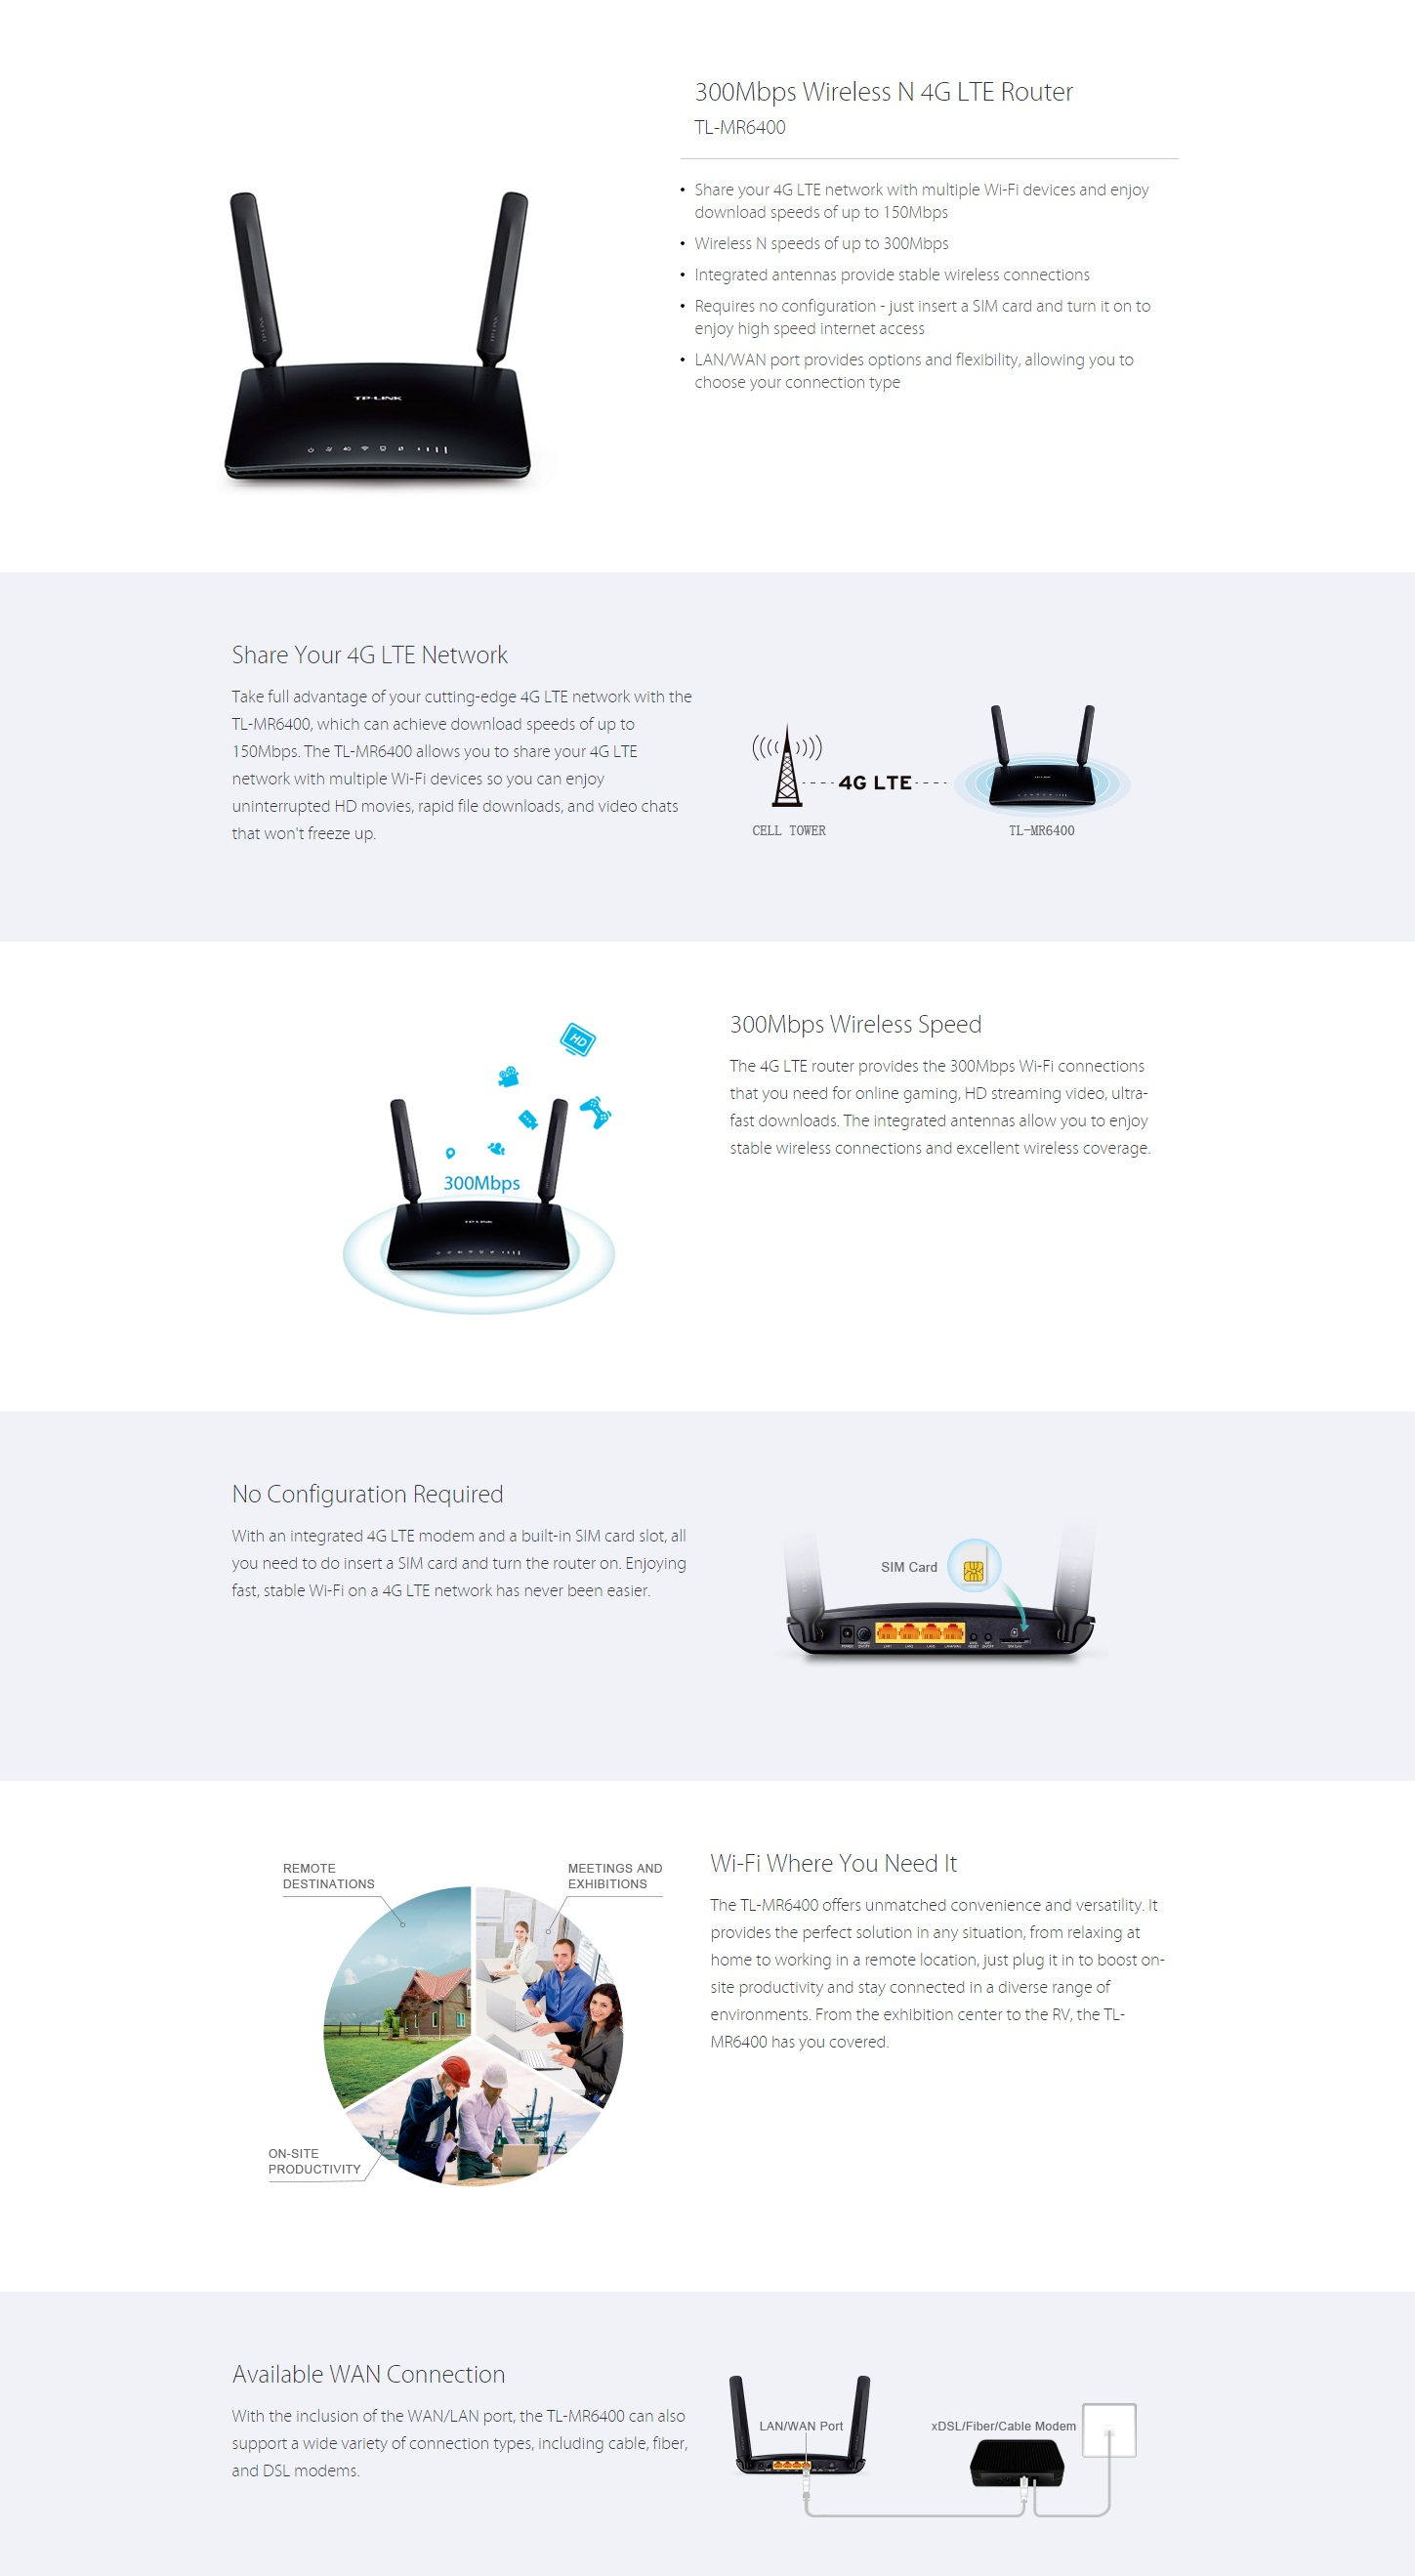 TP-LINK TL-MR6400 300Mbps 3G 4G LTE Wireless N Router